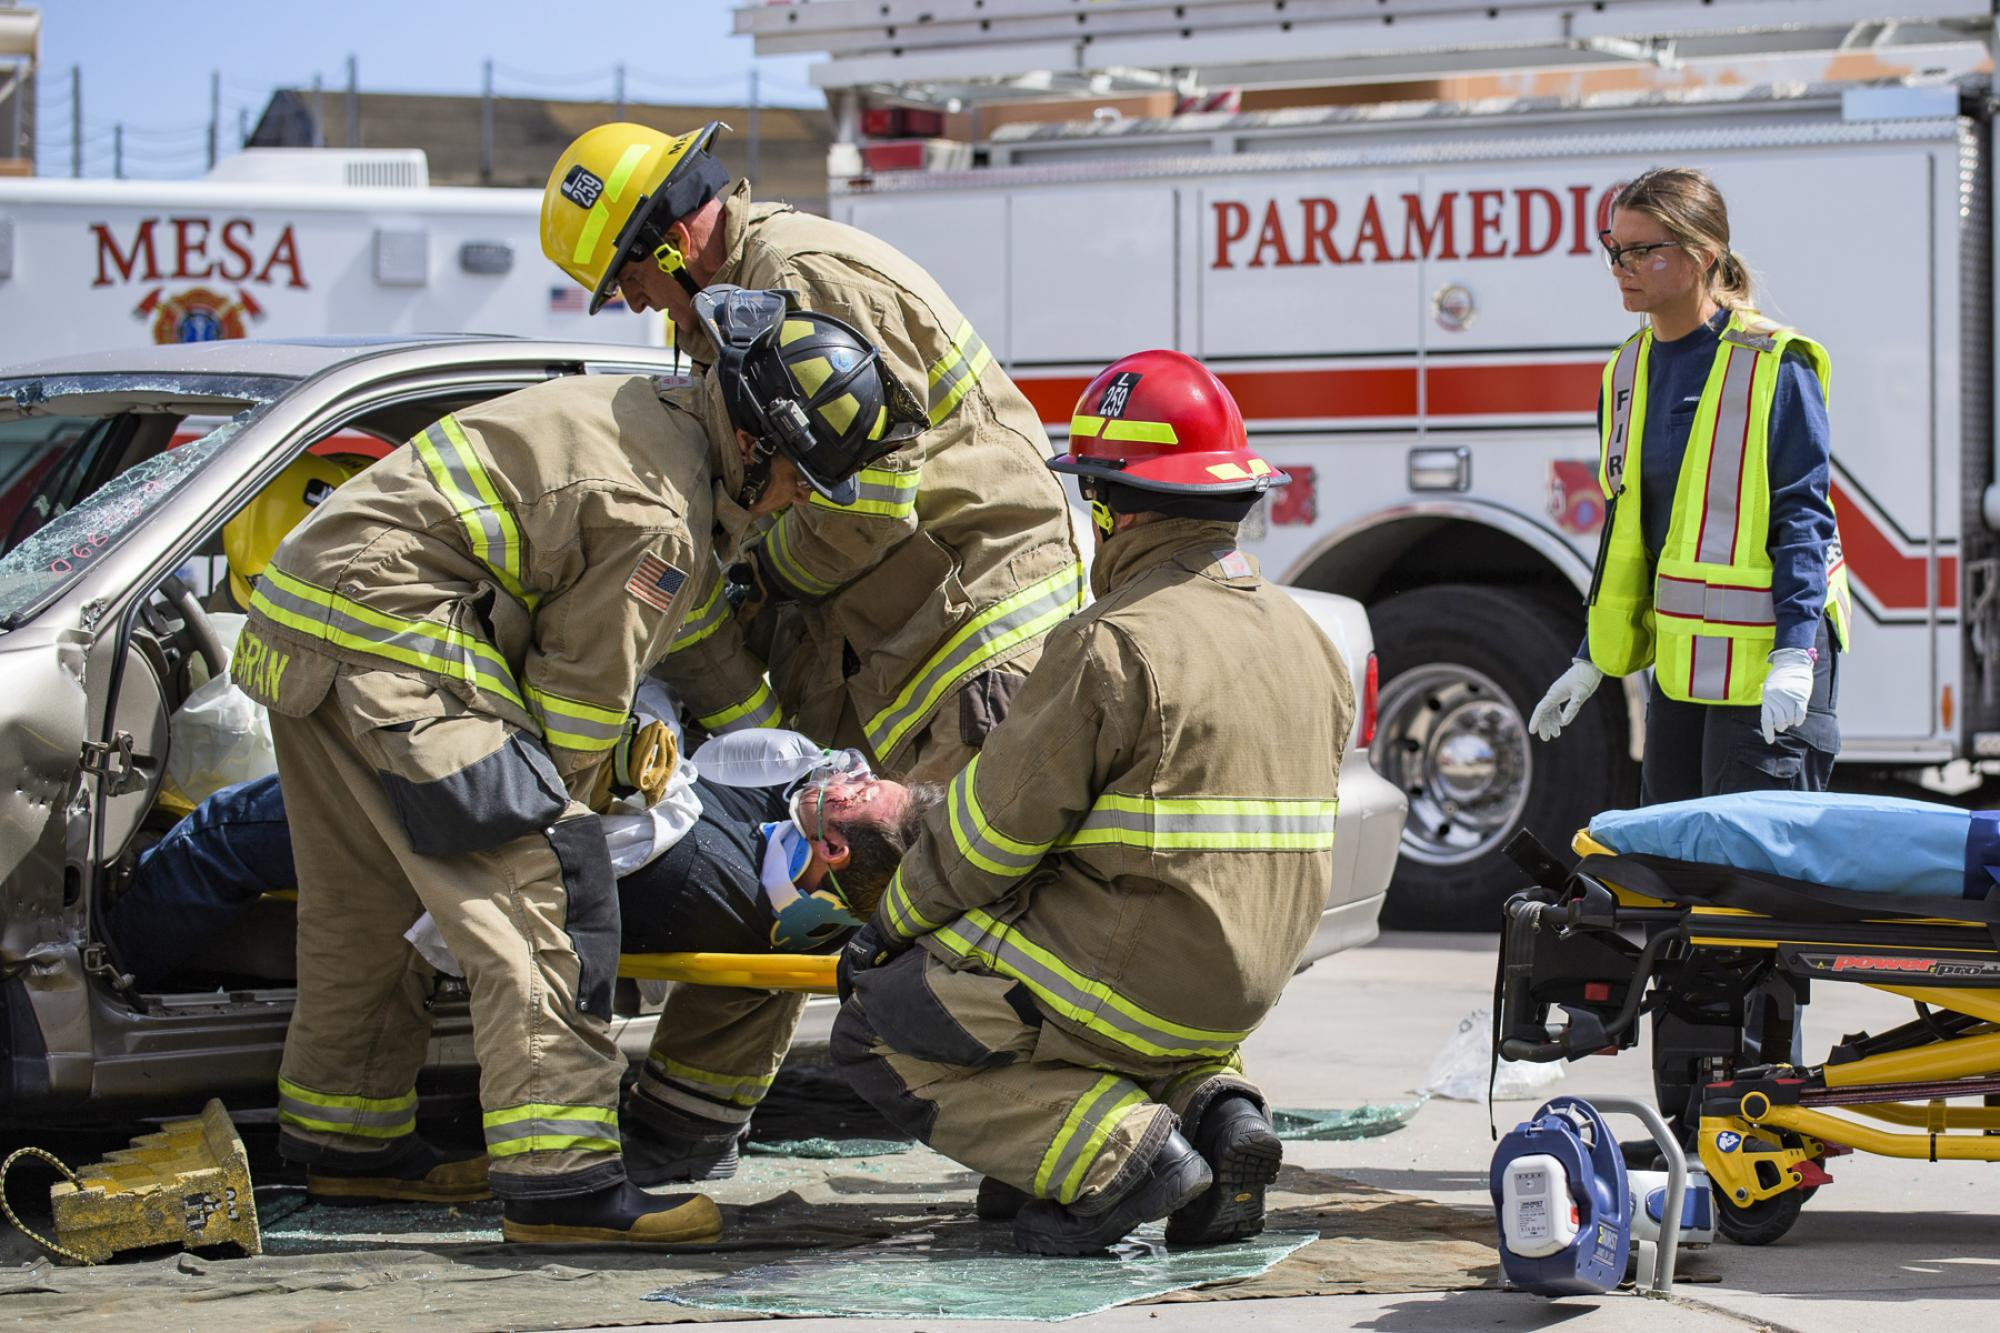 Firefighter and paramedic personnel extricate a crash victim during a simulated auto accident.